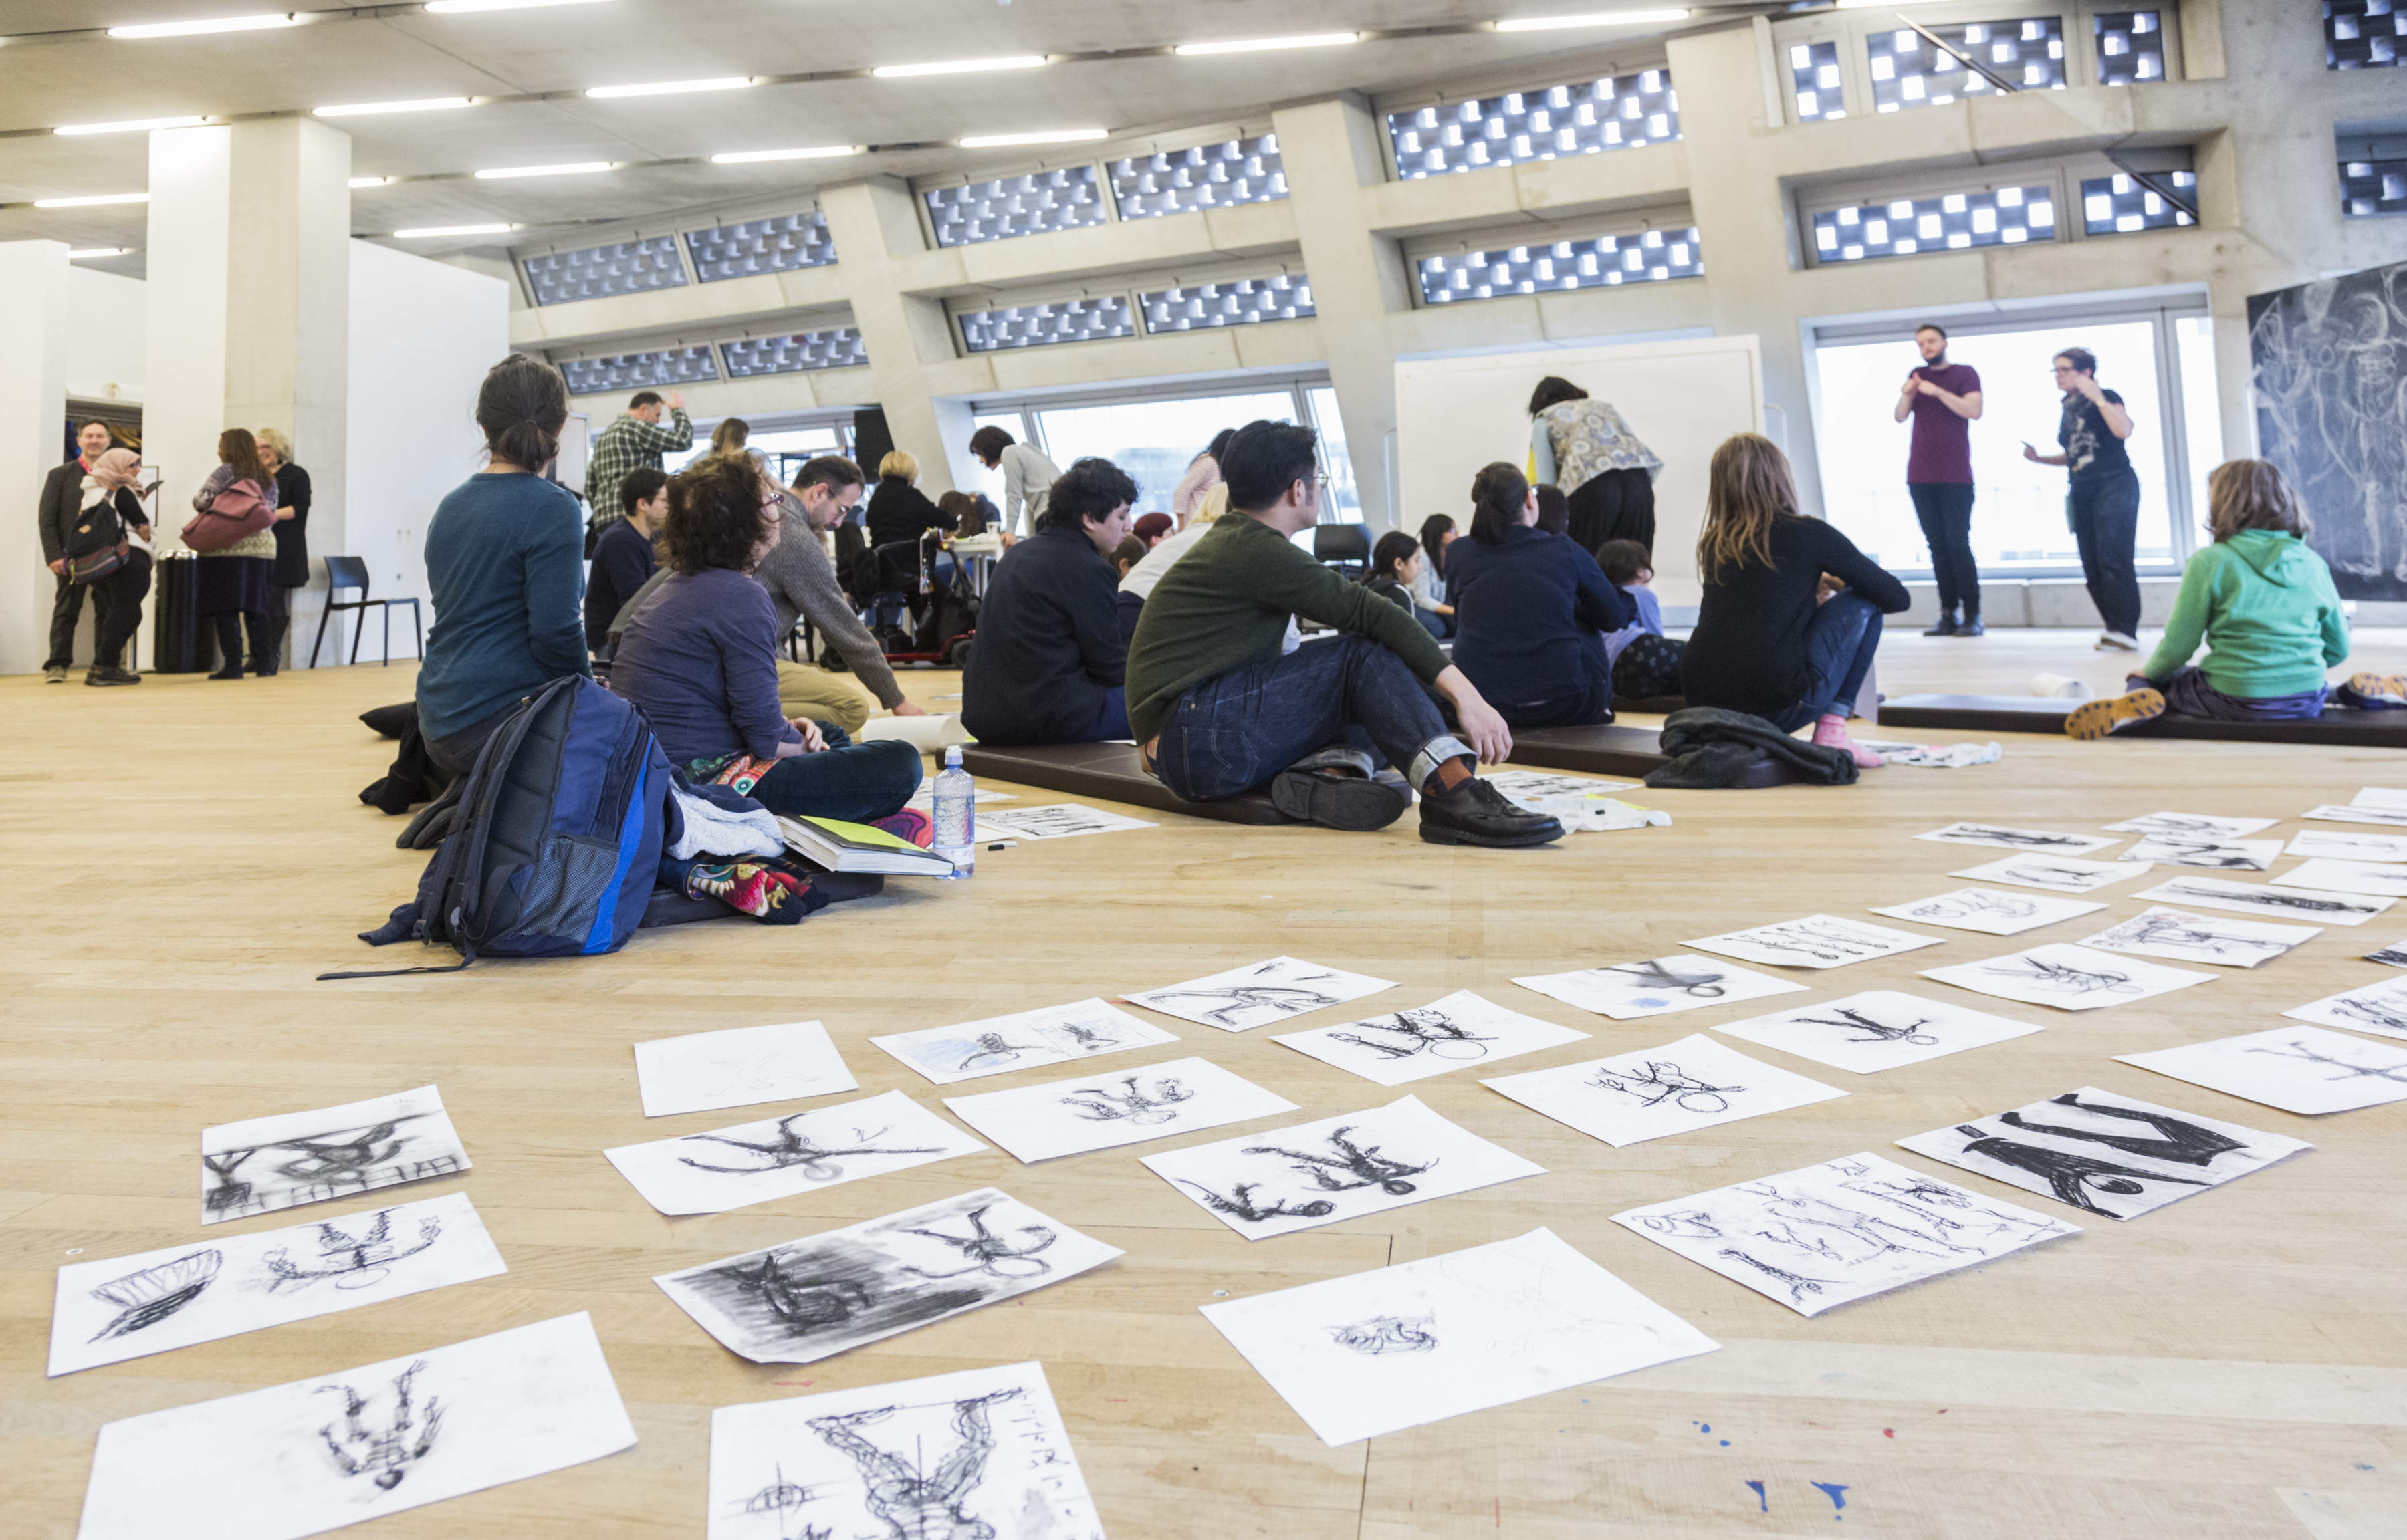 groups of people of varying ages, mostly seated on floor cushions, observe Rachel Gadsden as she leads n art workshop in front of a large blackboard with florid sketches on it